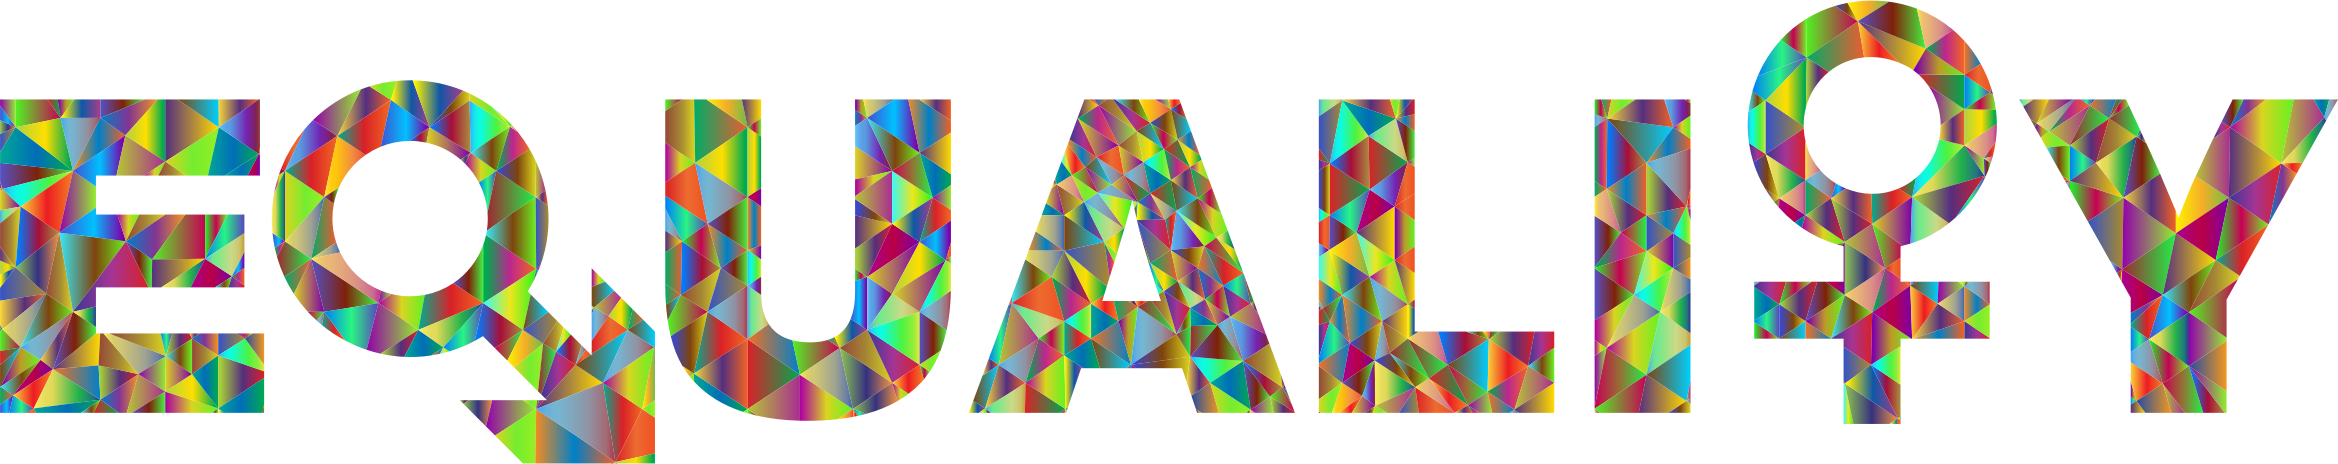 Low Poly Chromatic Gender Equality Typography by GDJ